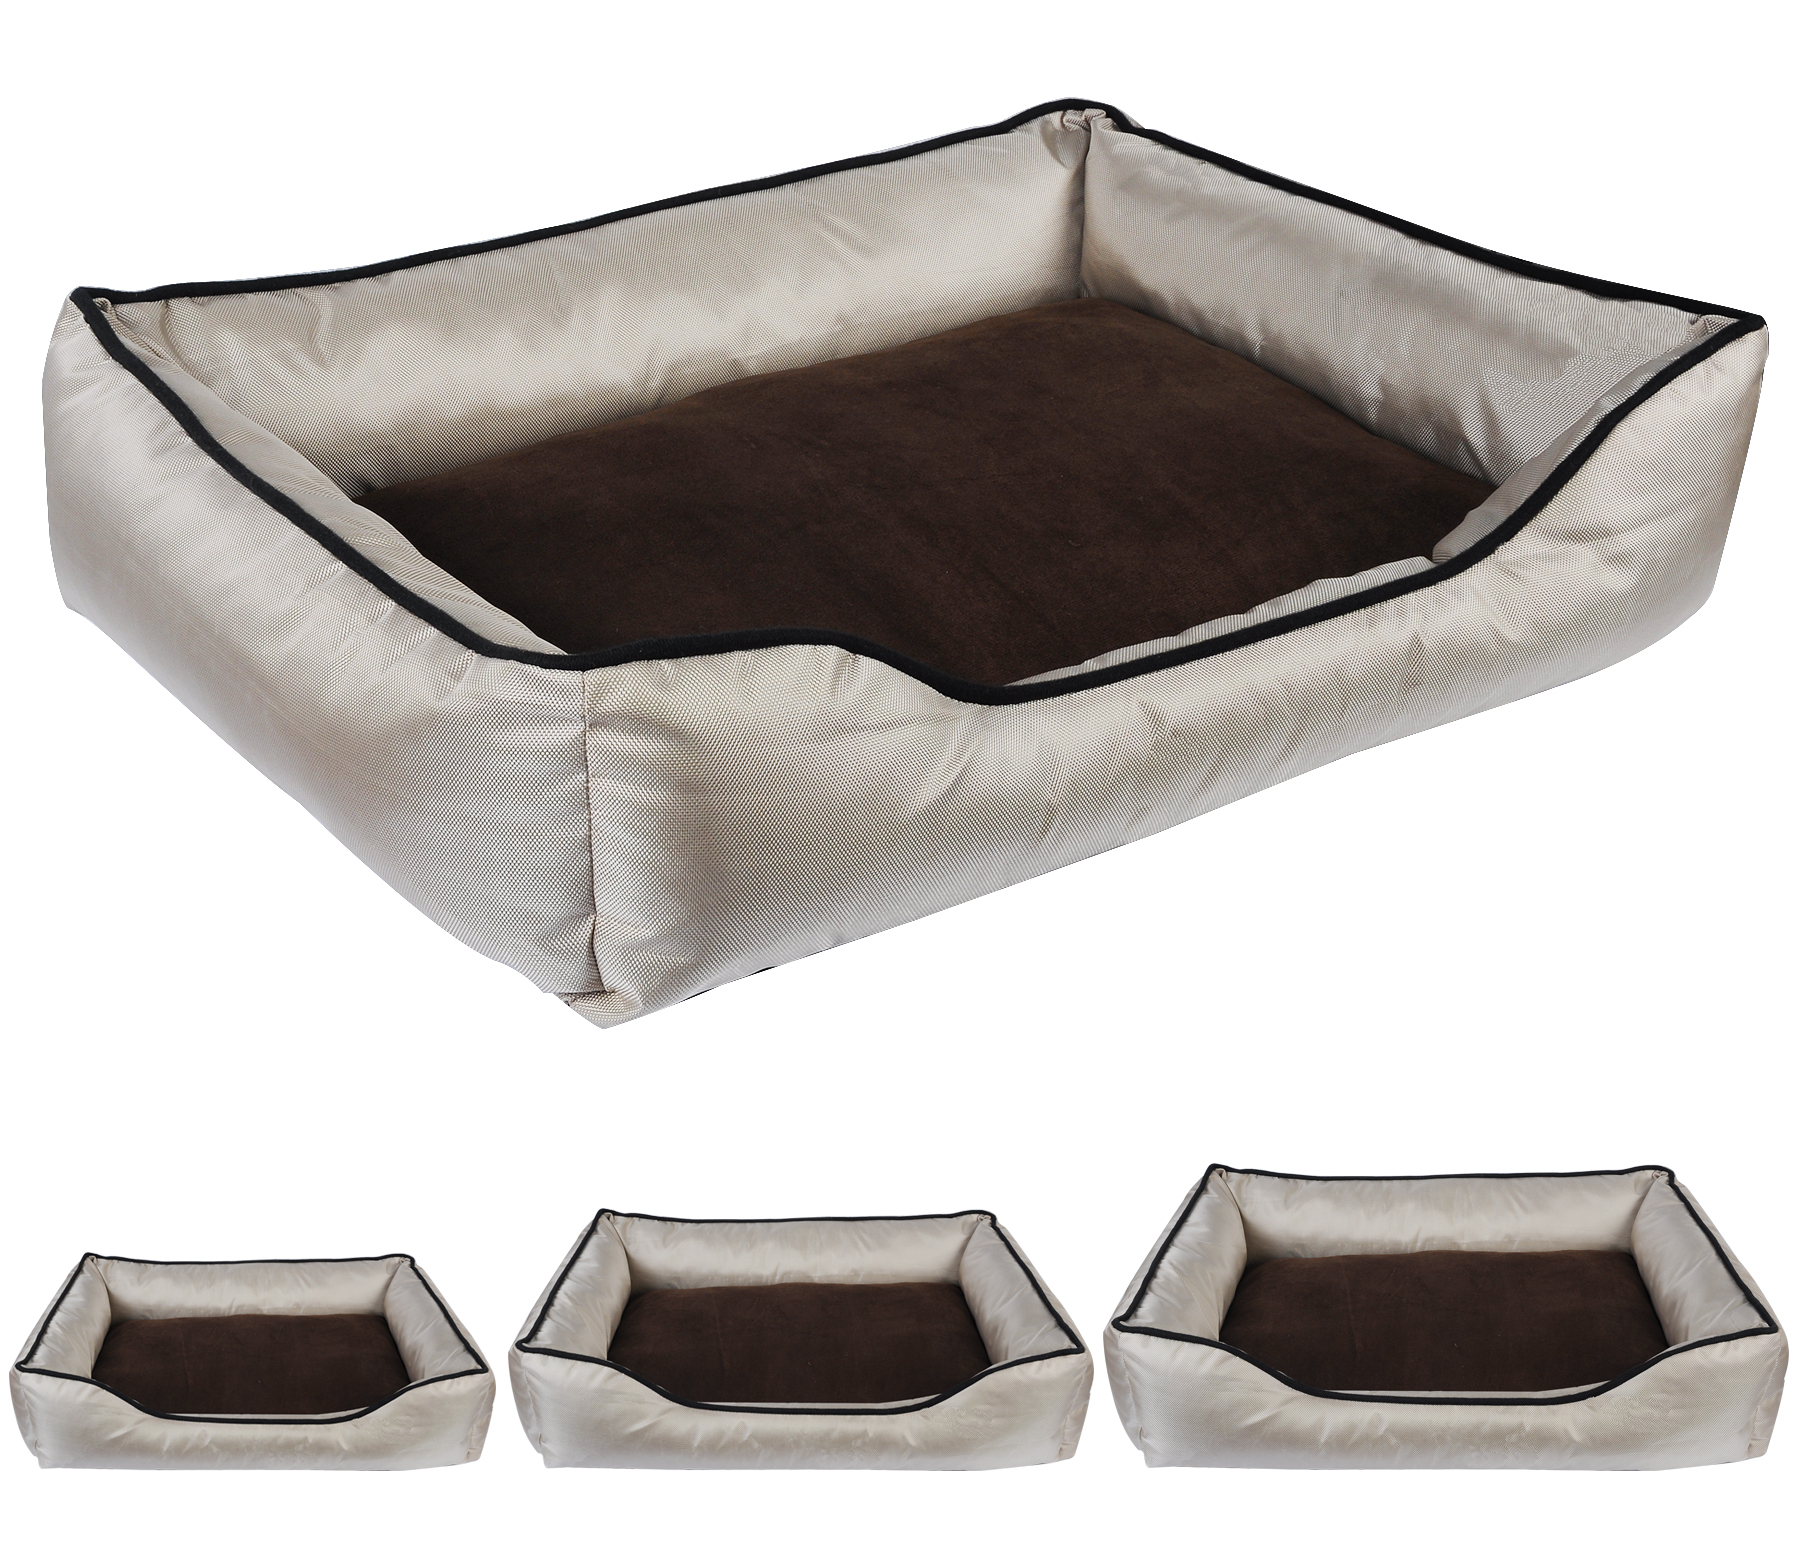 lit coussin canap pour chien couverture animaux panier lit xl xxl xxxl 368 ebay. Black Bedroom Furniture Sets. Home Design Ideas